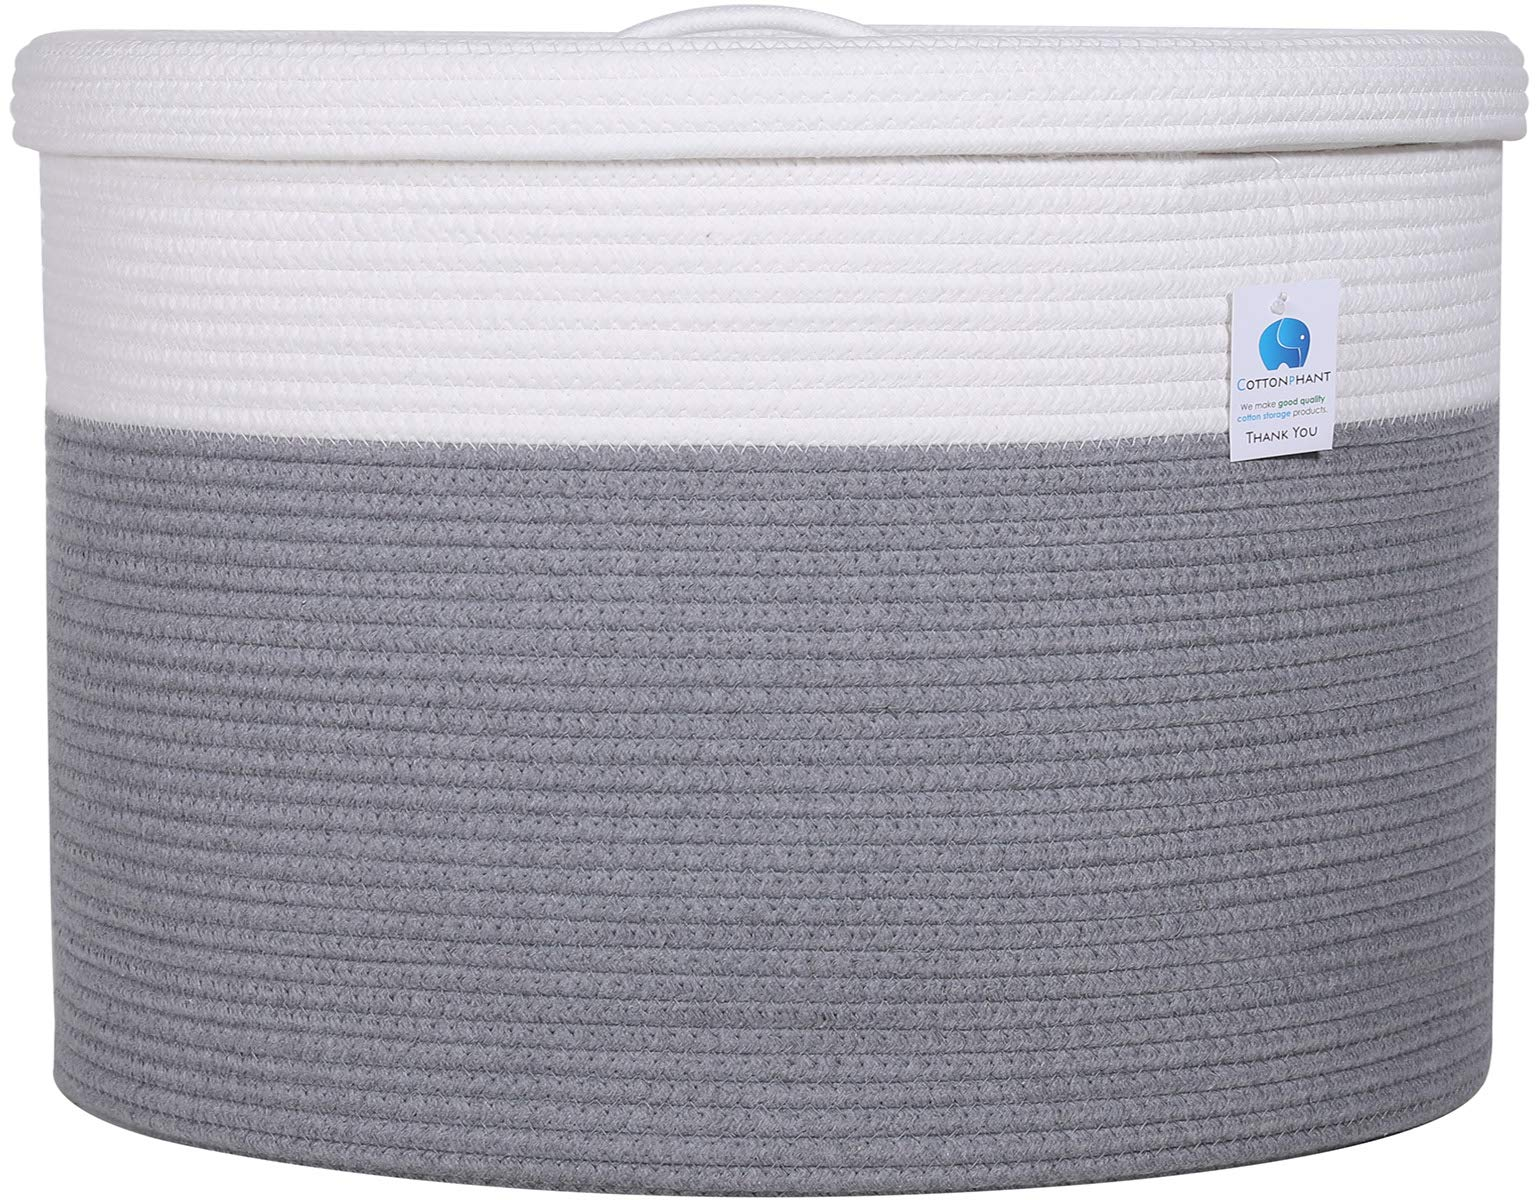 20'' x 20'' x 15'' Extra Large Storage Basket with Lid, Cotton Rope Storage Baskets, Laundry Hamper, Toy Bin, for Toys Blankets Pillows Storage in Living Room Baby Nursery, Large Basket Grey with Cover by Cottonphant